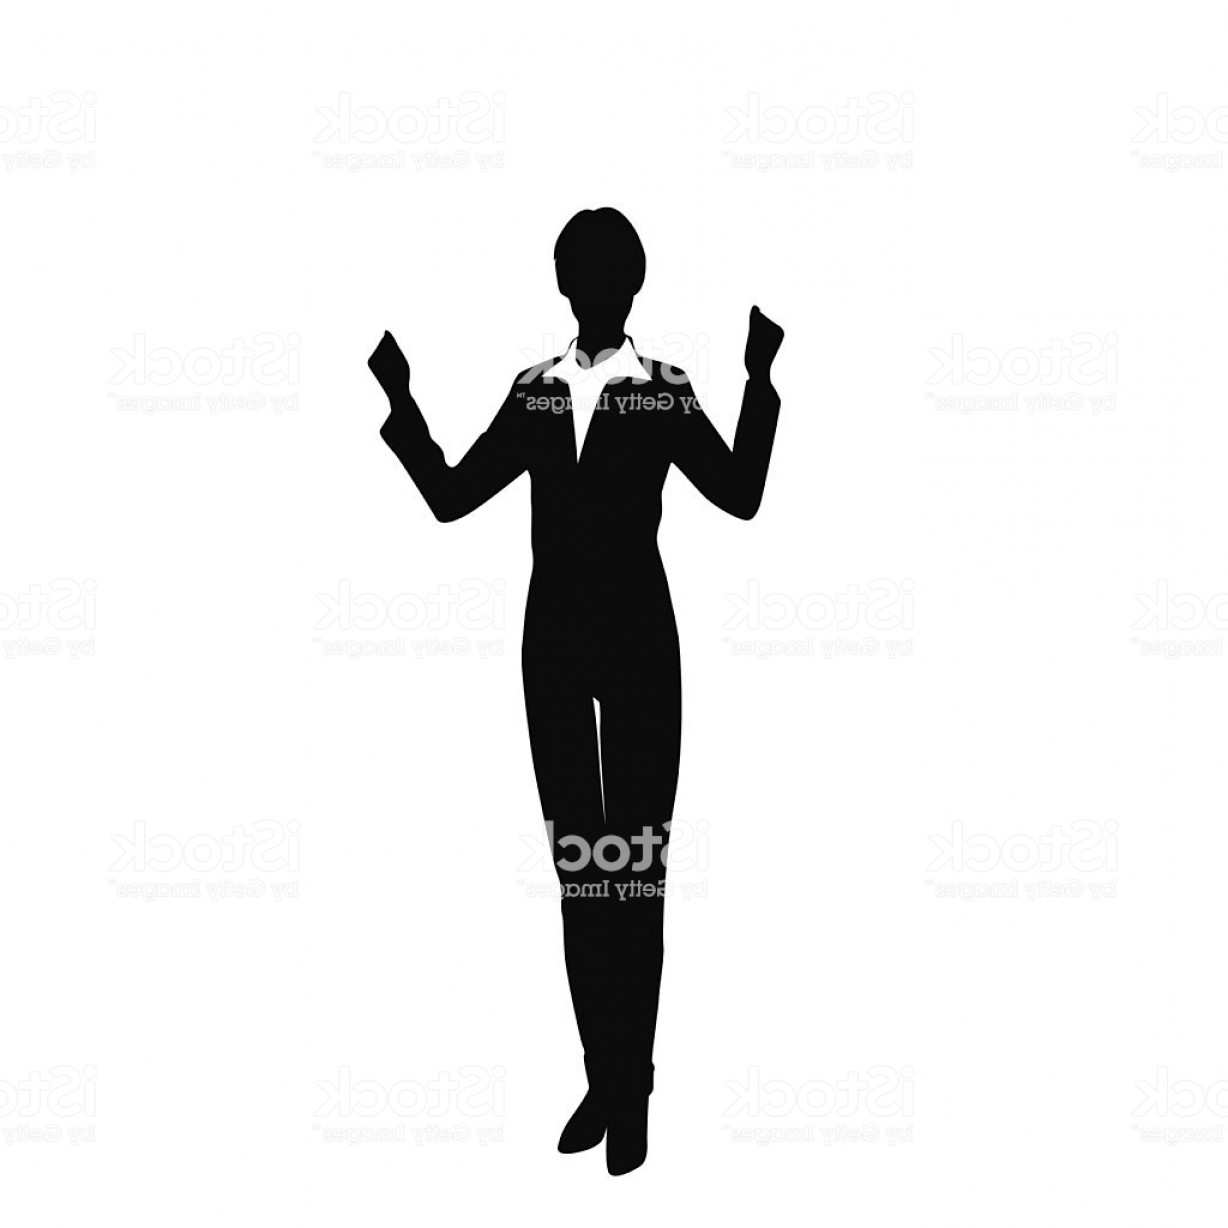 Holding Hands Up Silhouette Vector: Business Woman Silhouette Excited Hold Hands Up Gm